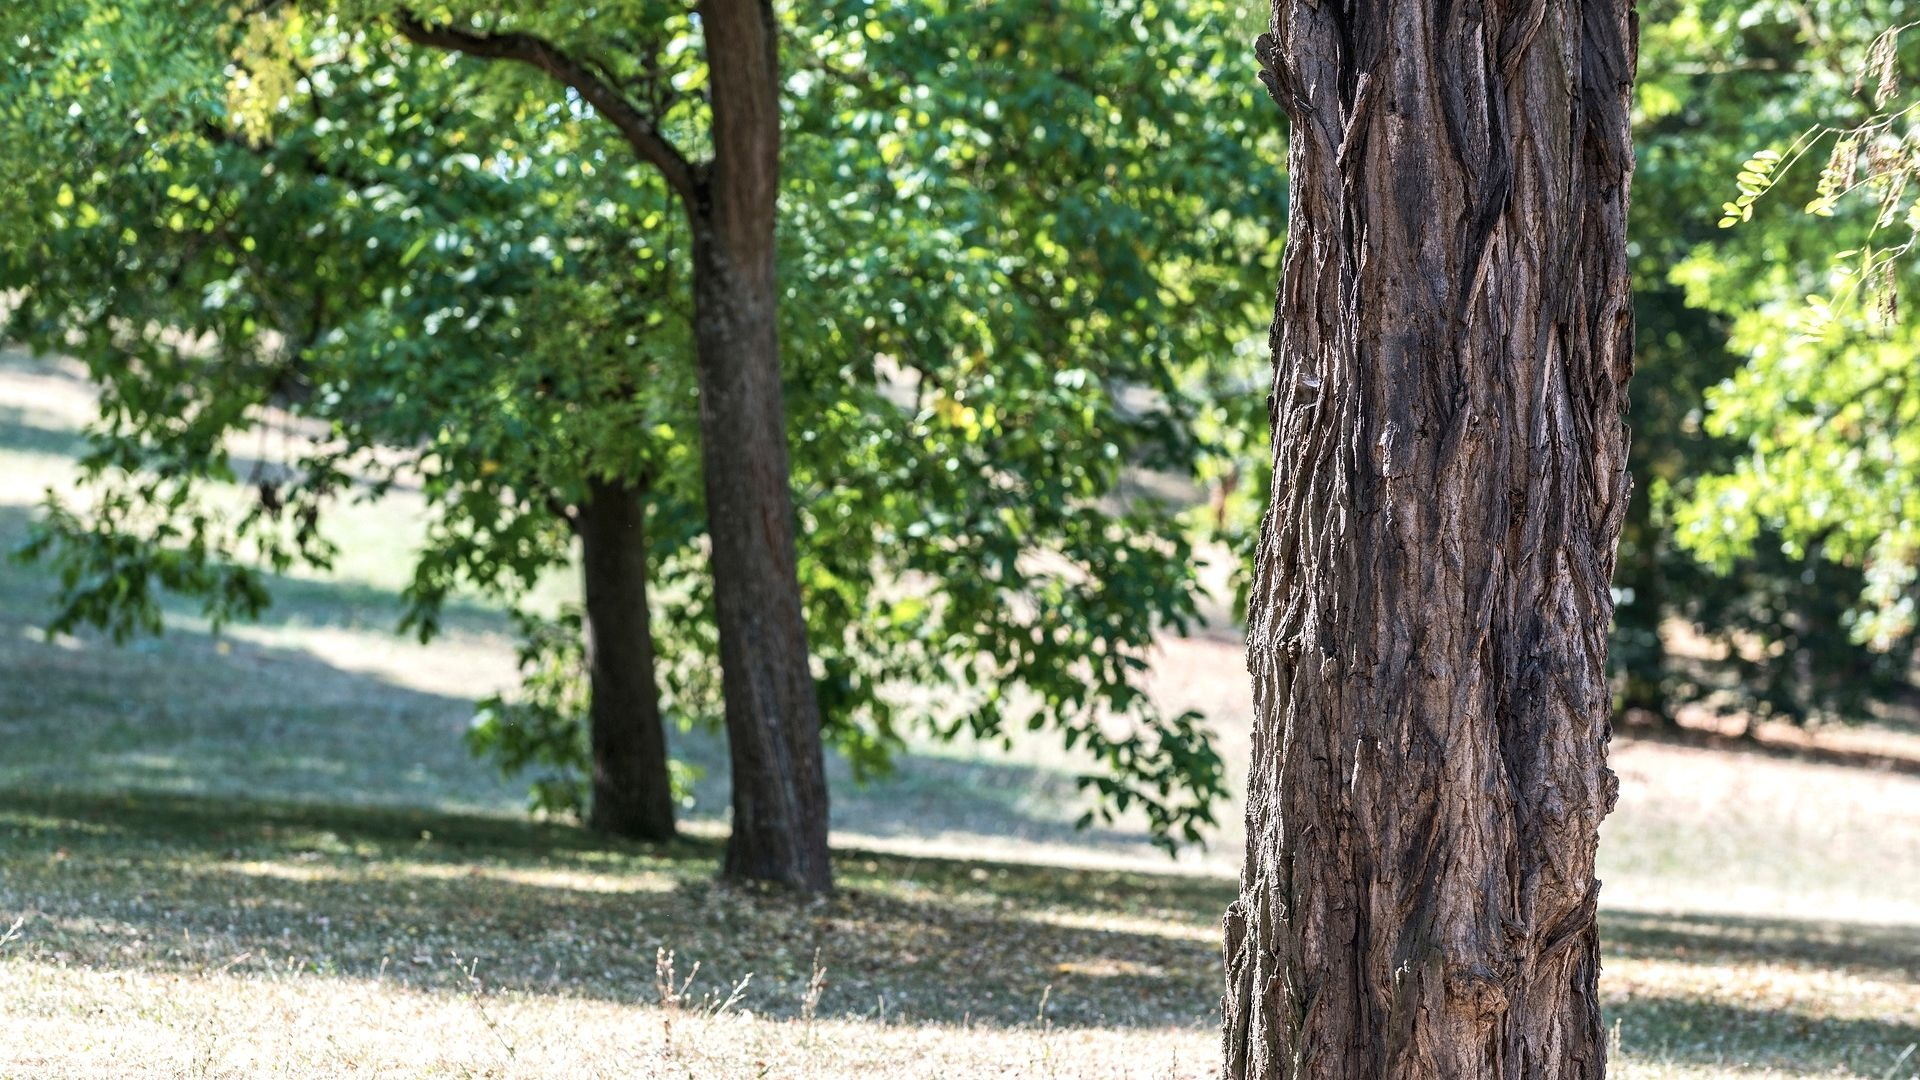 Why do the trees get stressed? How to cope with the stressed trees?